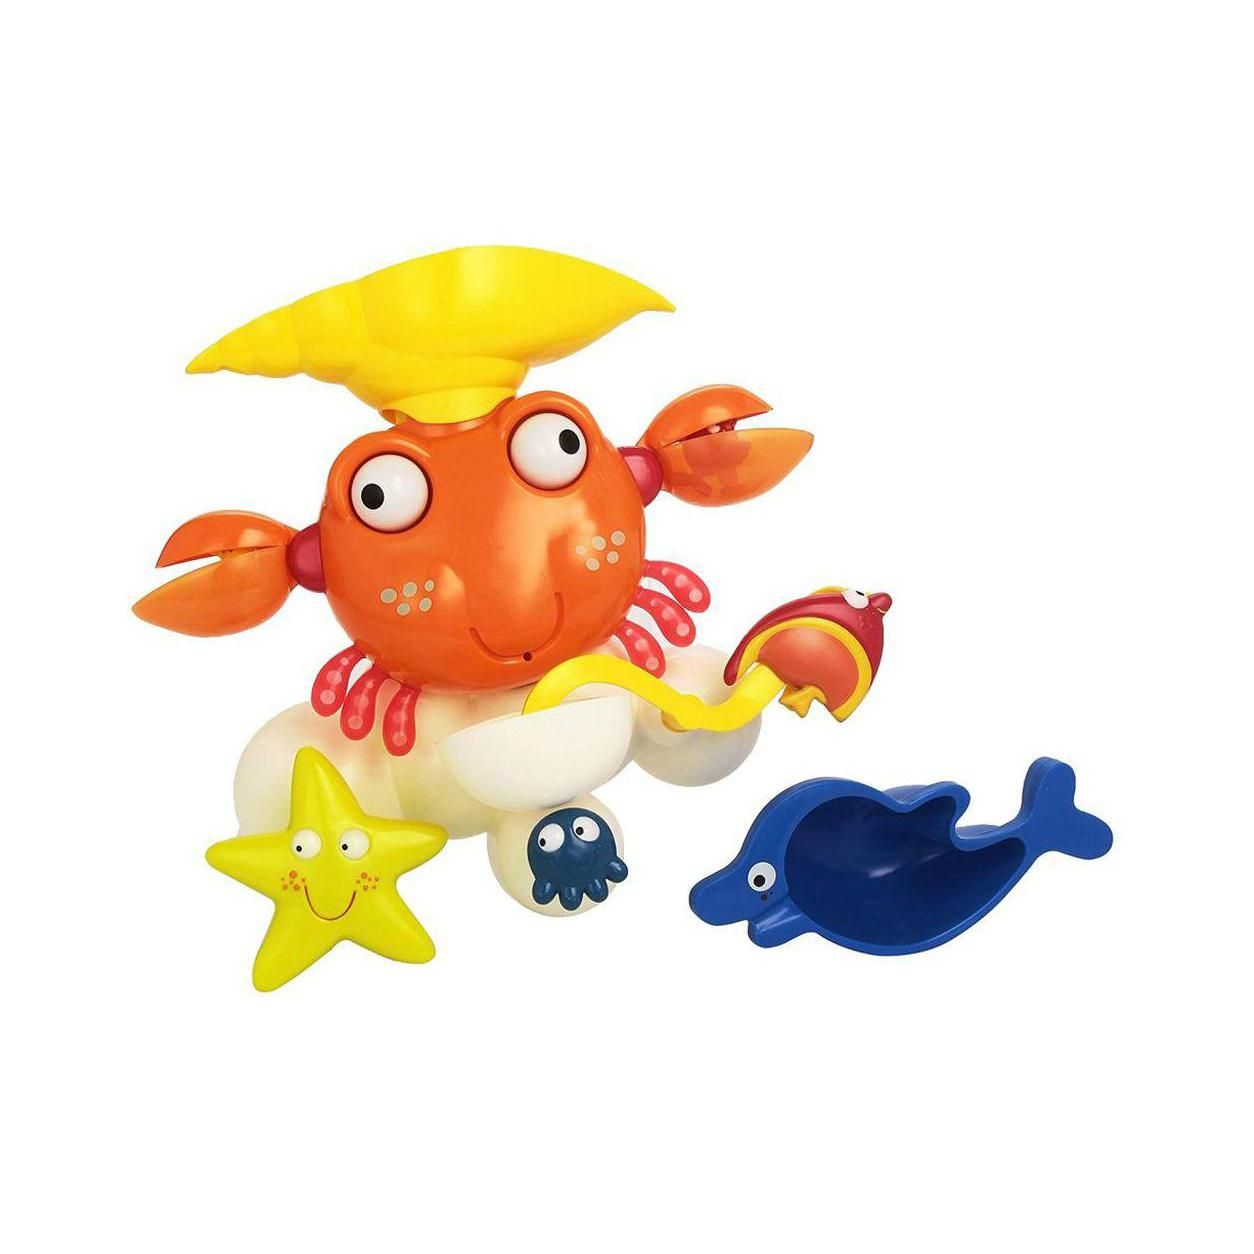 Lexibook - Bath Toy with full activities play set in shape of a Crab (IT025)